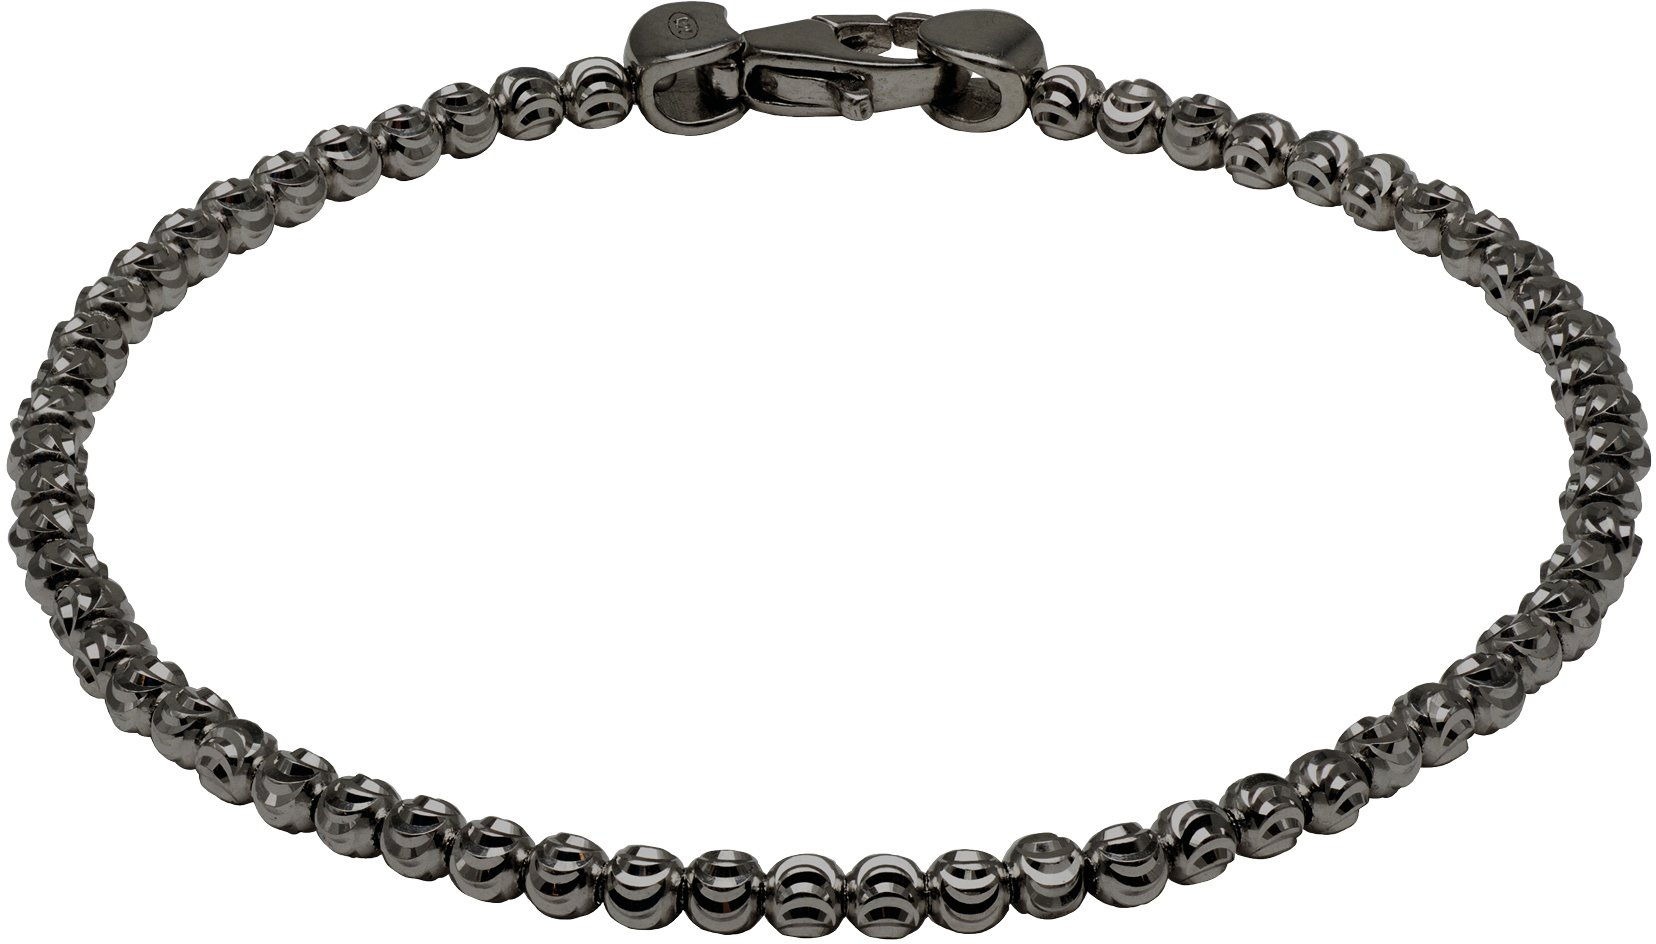 Officina Bernardi - Moon Collection - Bracelet (4 Color Choice) - Italian 925 Sterling Silver (black-rhodium-plated-silver, 8 Inches)